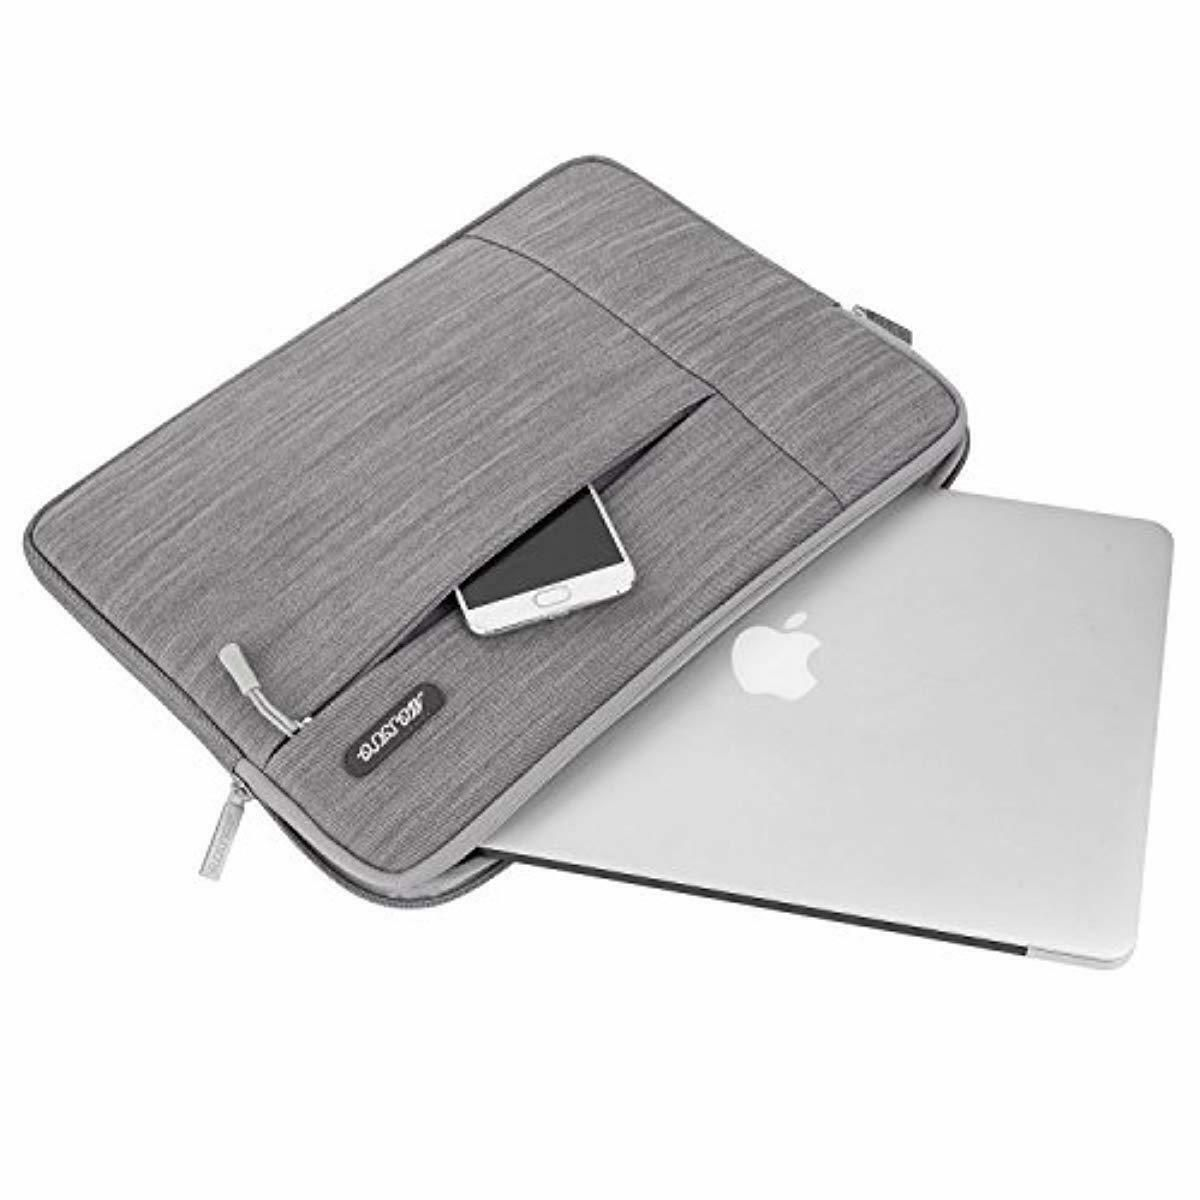 Fits Most Laptops Mind Trip Zipper Sleeve Bag Cover MacBooks